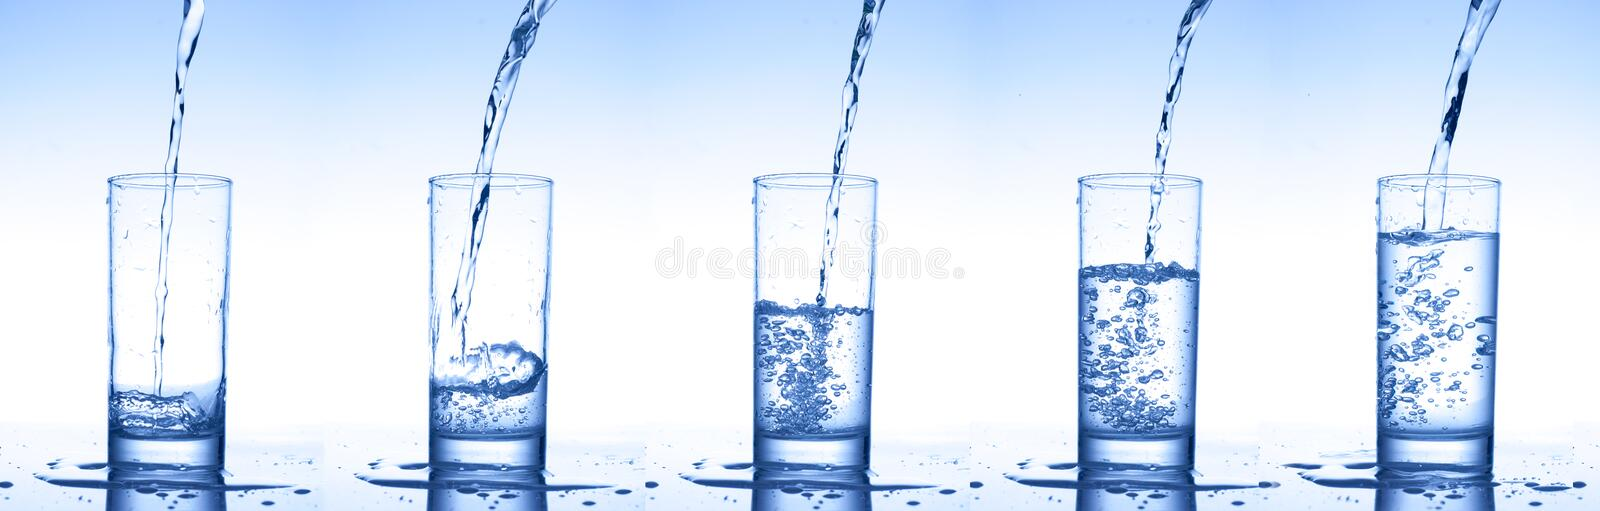 Pouring water into glasses stock photos